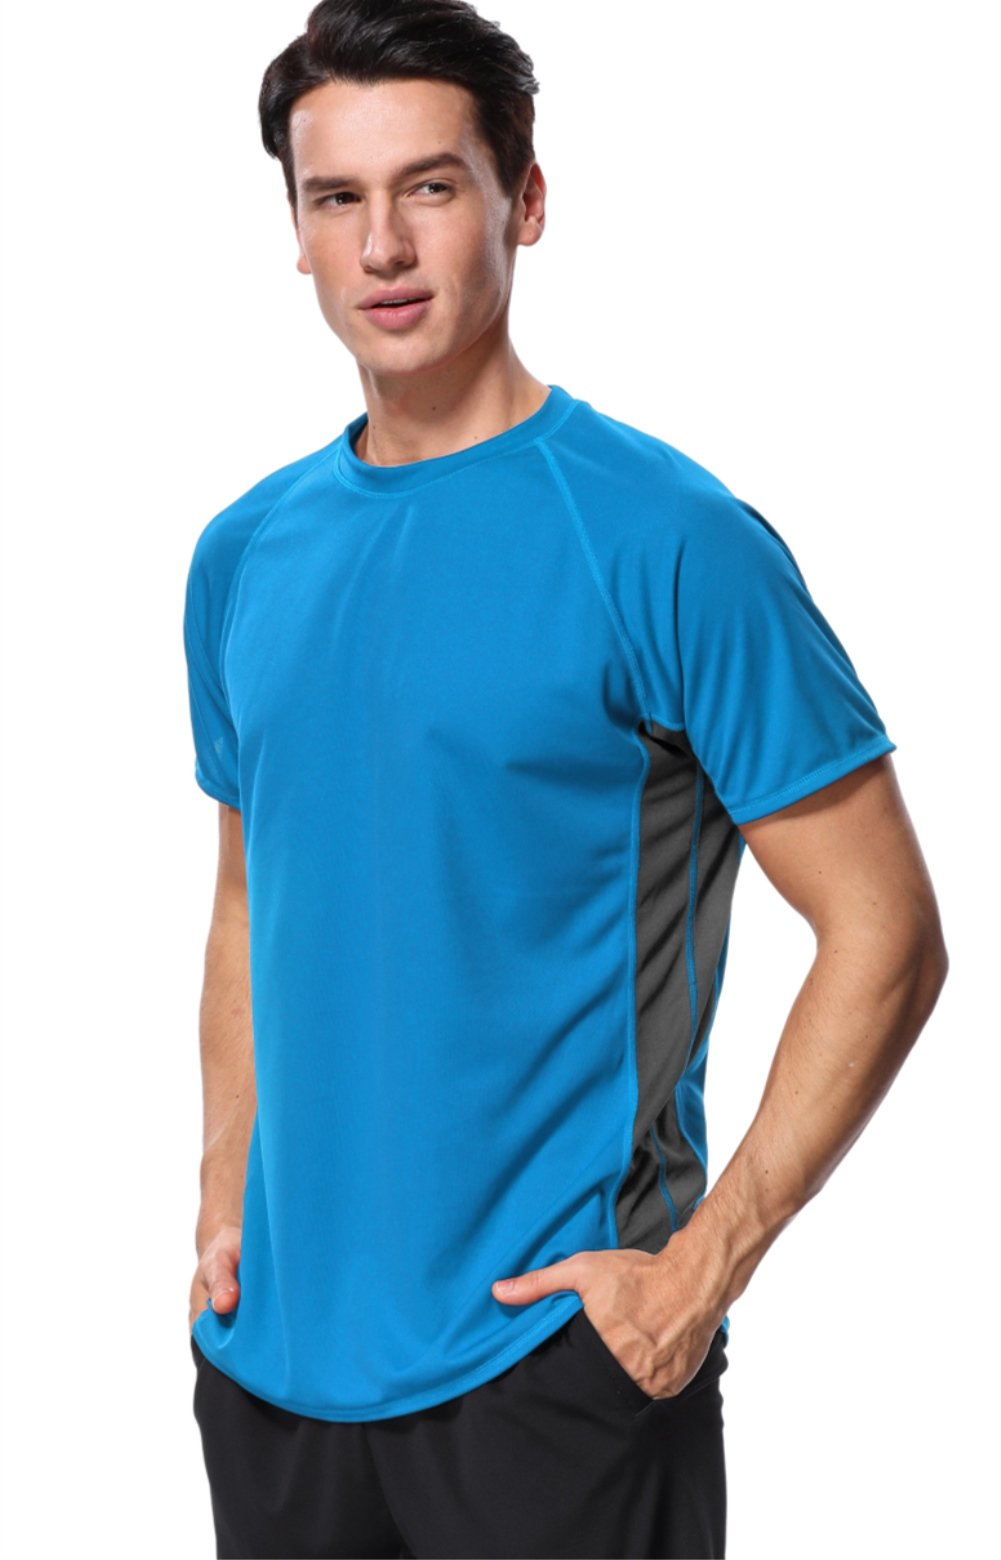 Anfilia Men's Colorblock Surf Shirts for Men Short Sleeve Wetsuit UPF 50+ XL